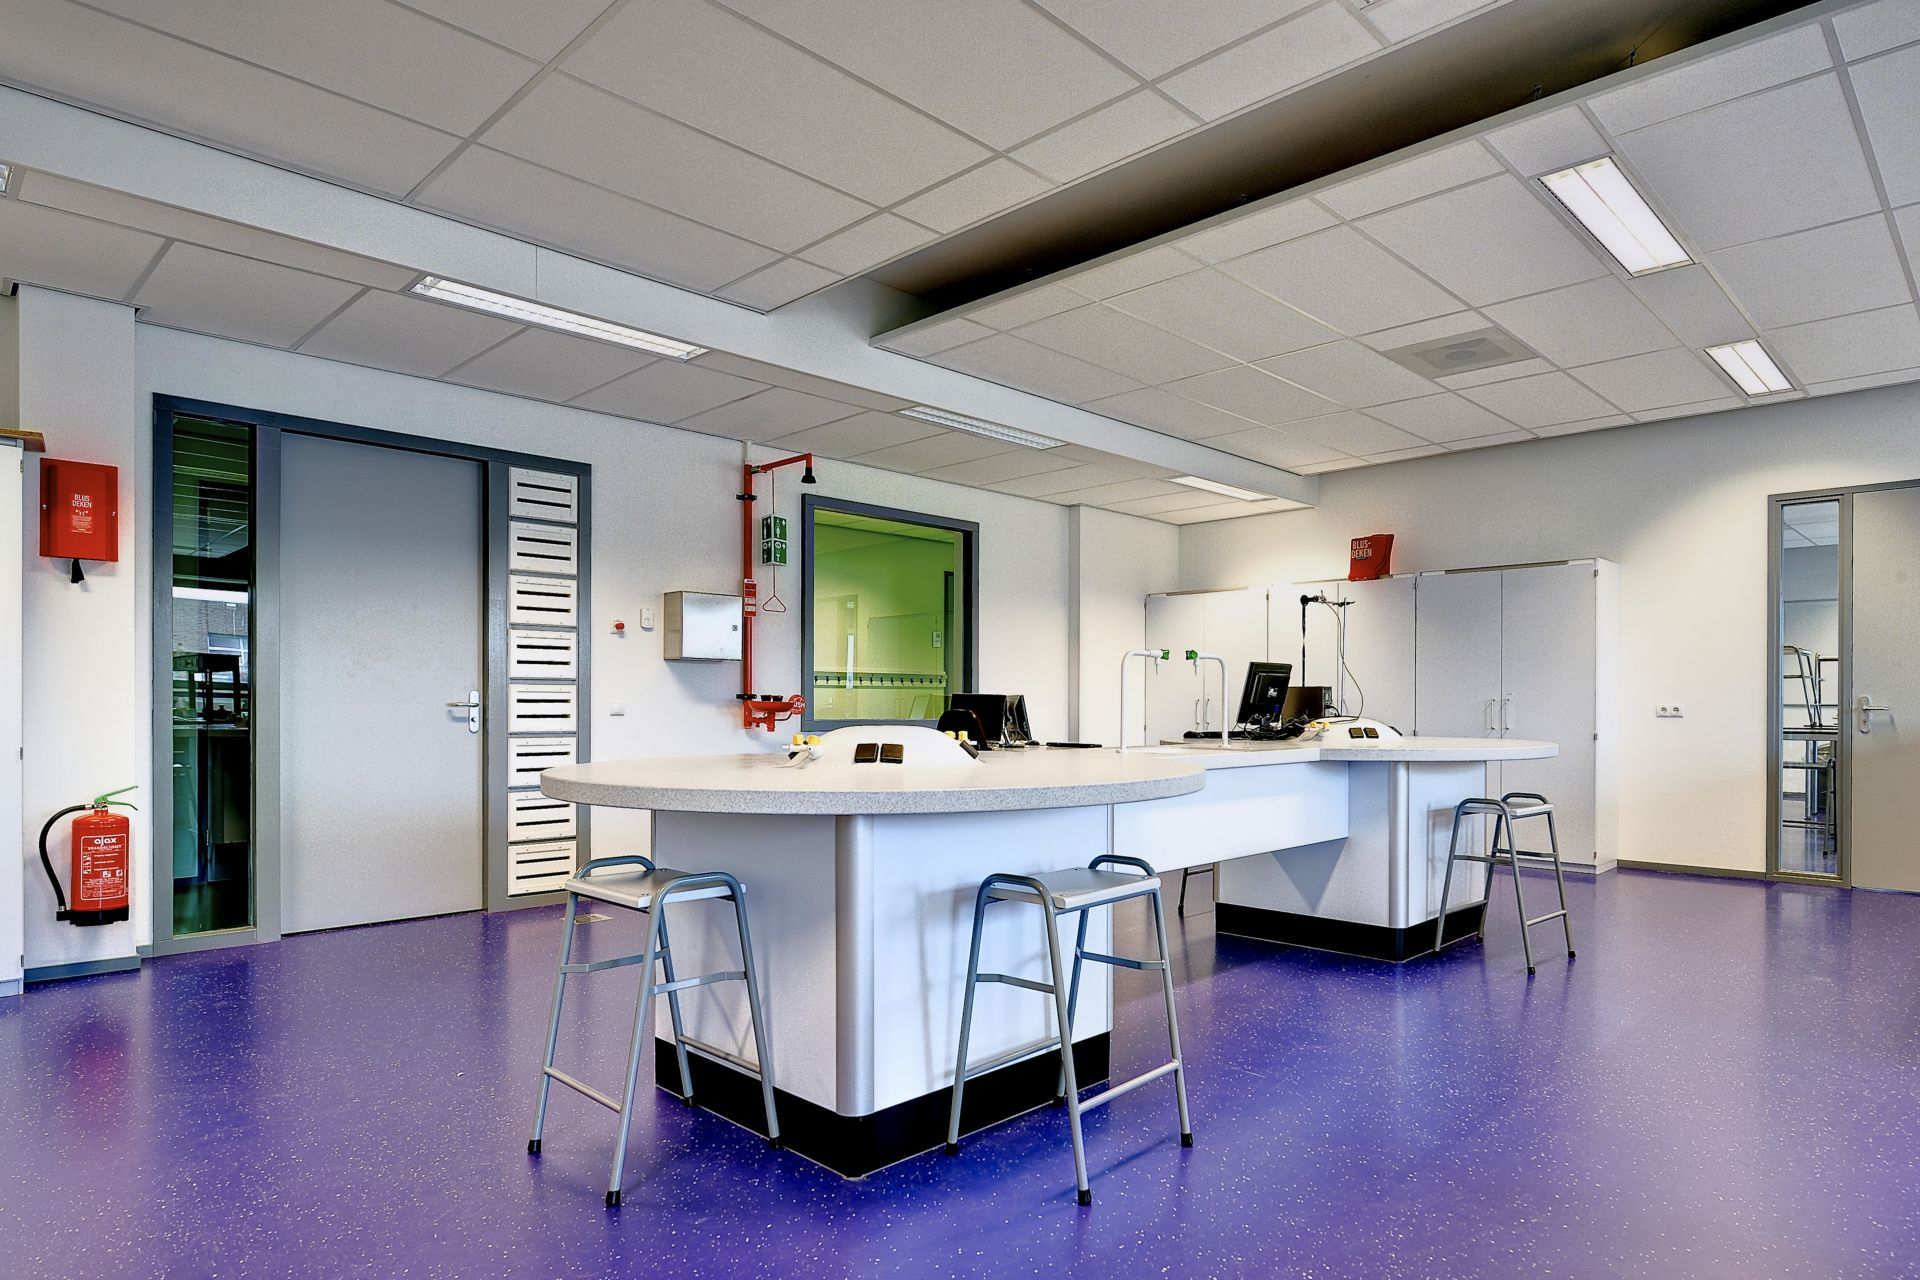 Colorful decorative floor made with Sika ComfortFloor system in Revius Lyceum School in Netherlands